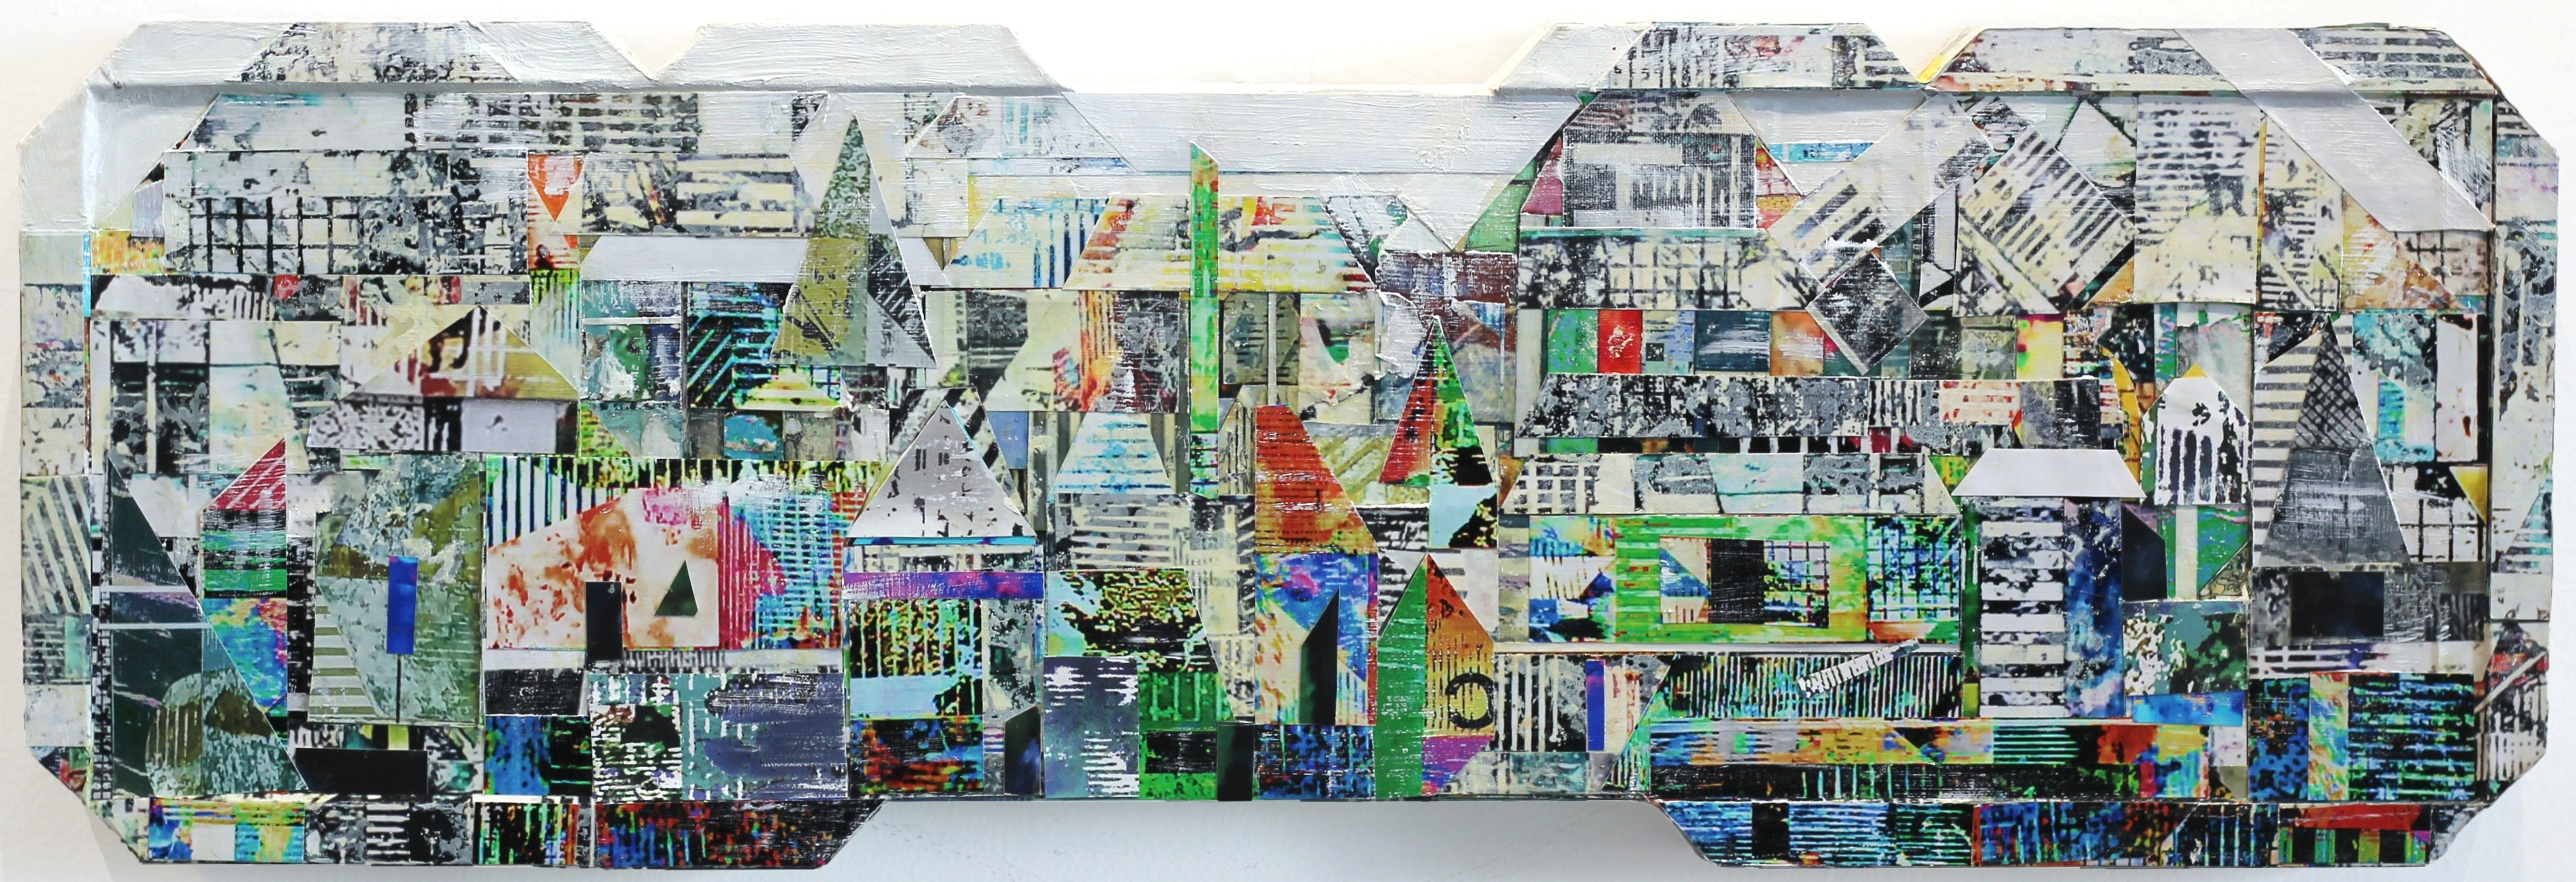 Sublime 717 - Contemporary Sculptural Photographic Collage Wall Artwork